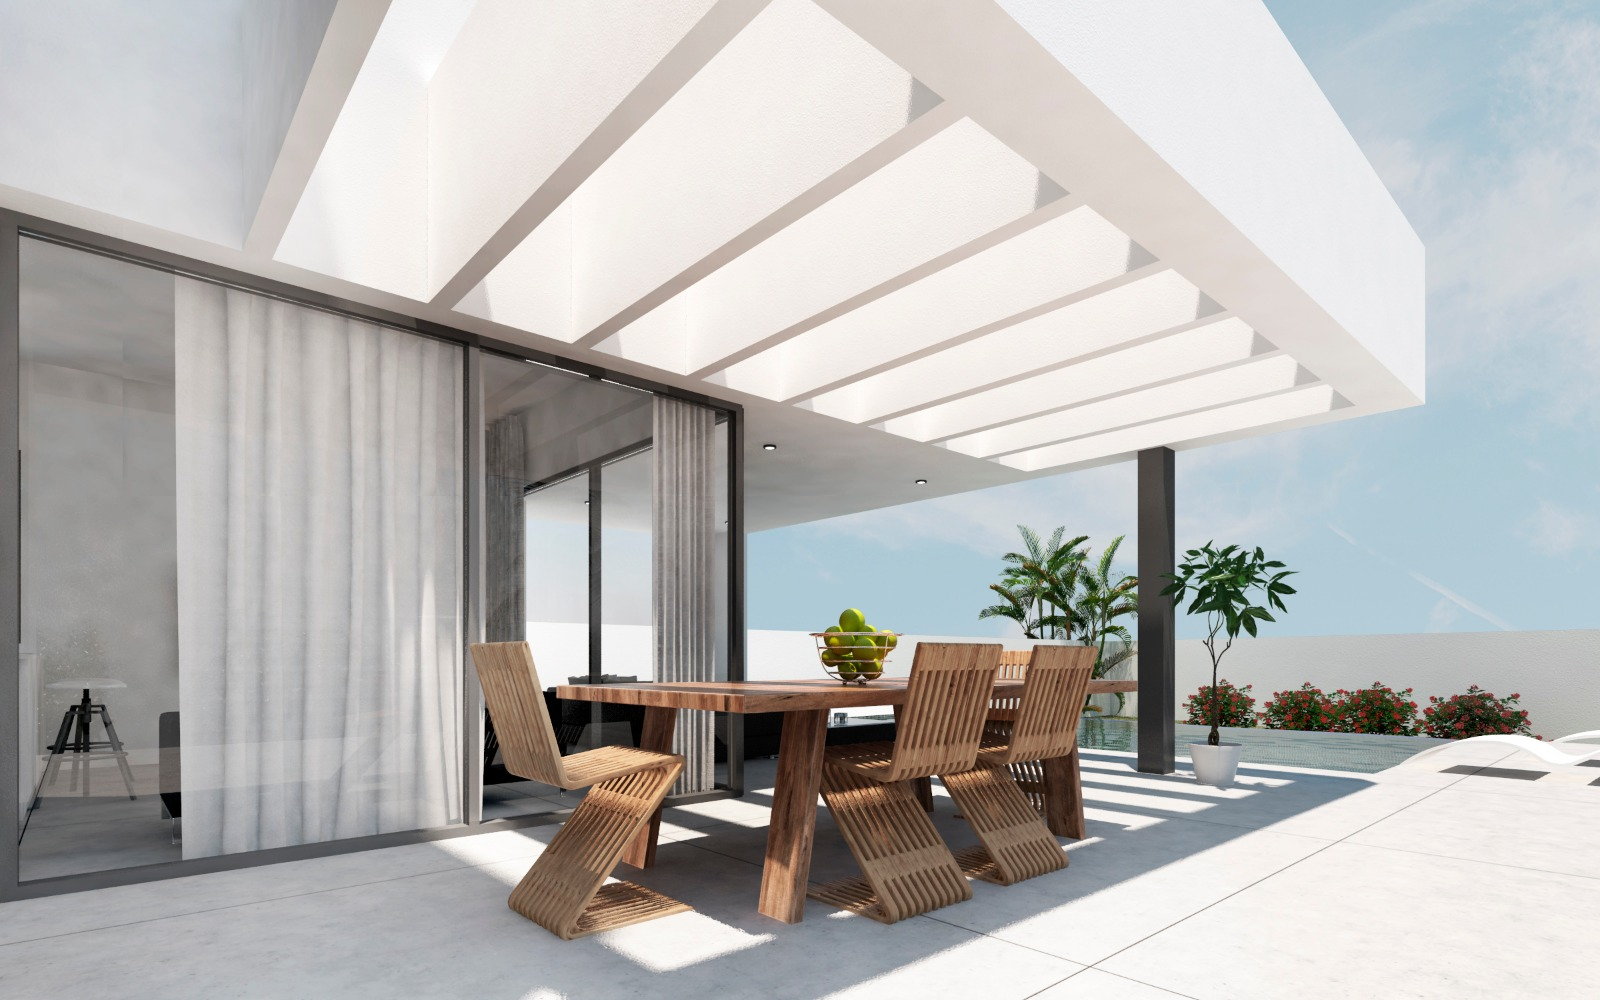 Extra outdoor space